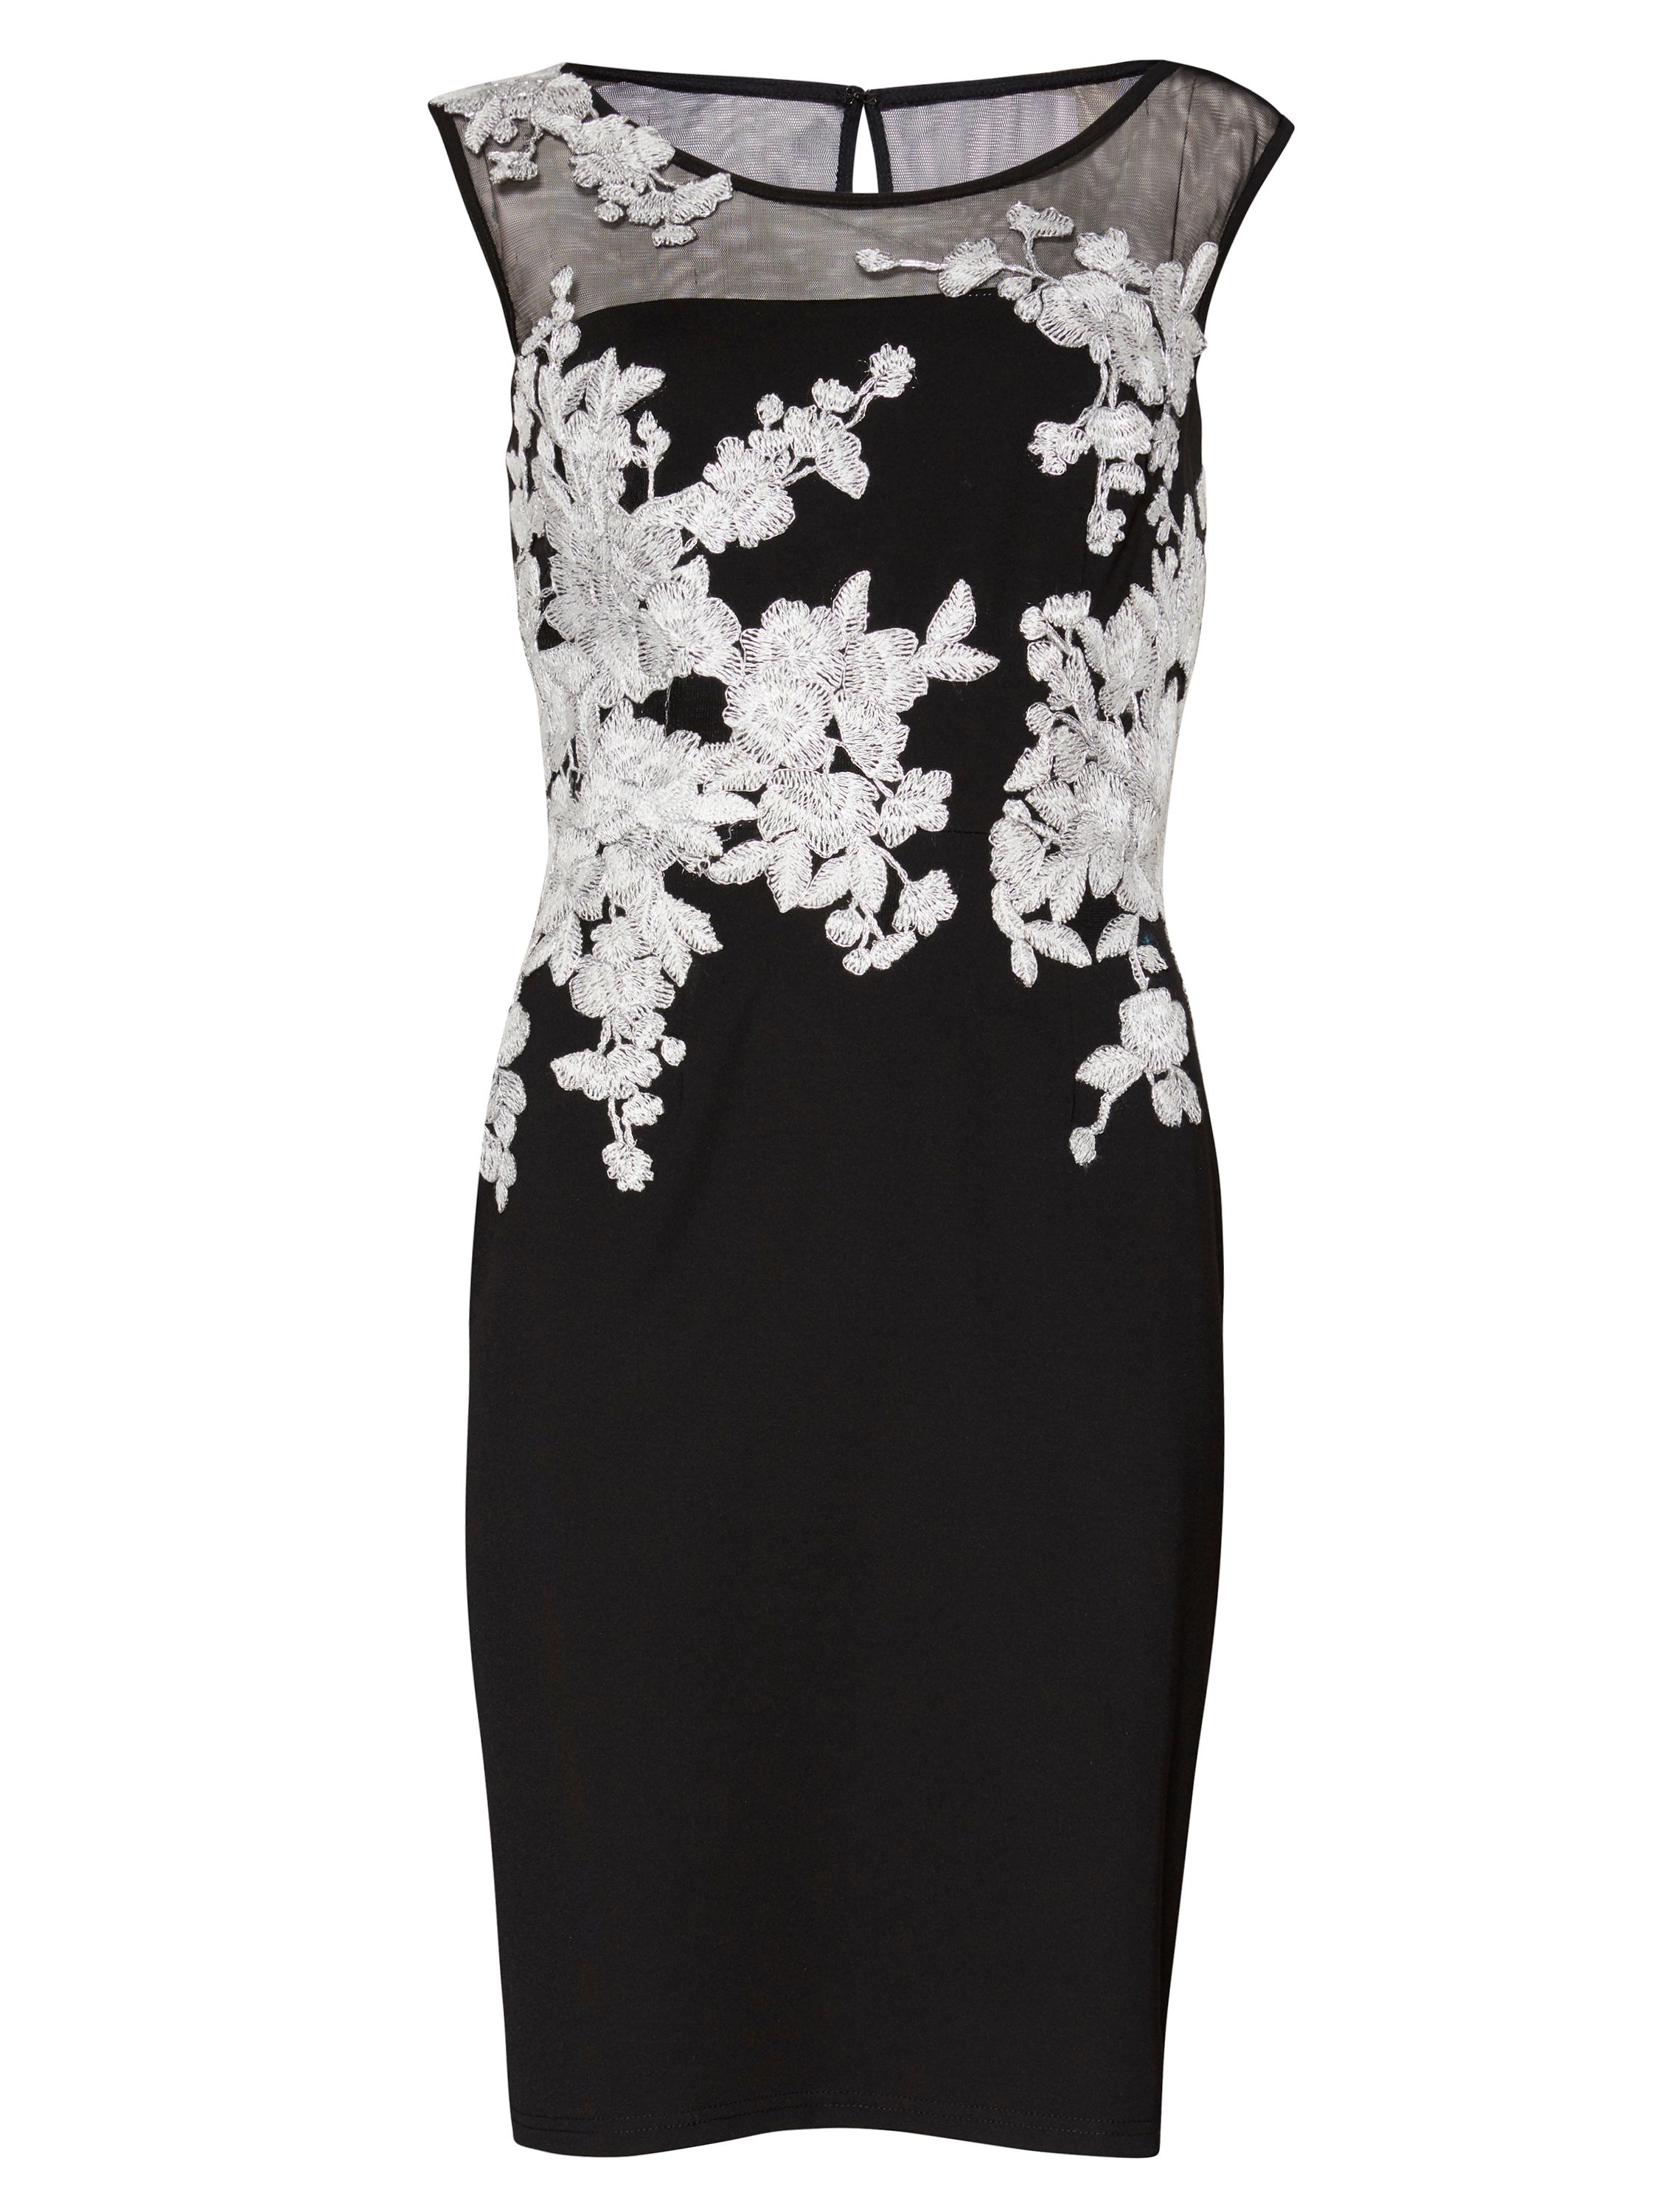 Gina Bacconi Olivia Contrast Embroidery Dress, Black